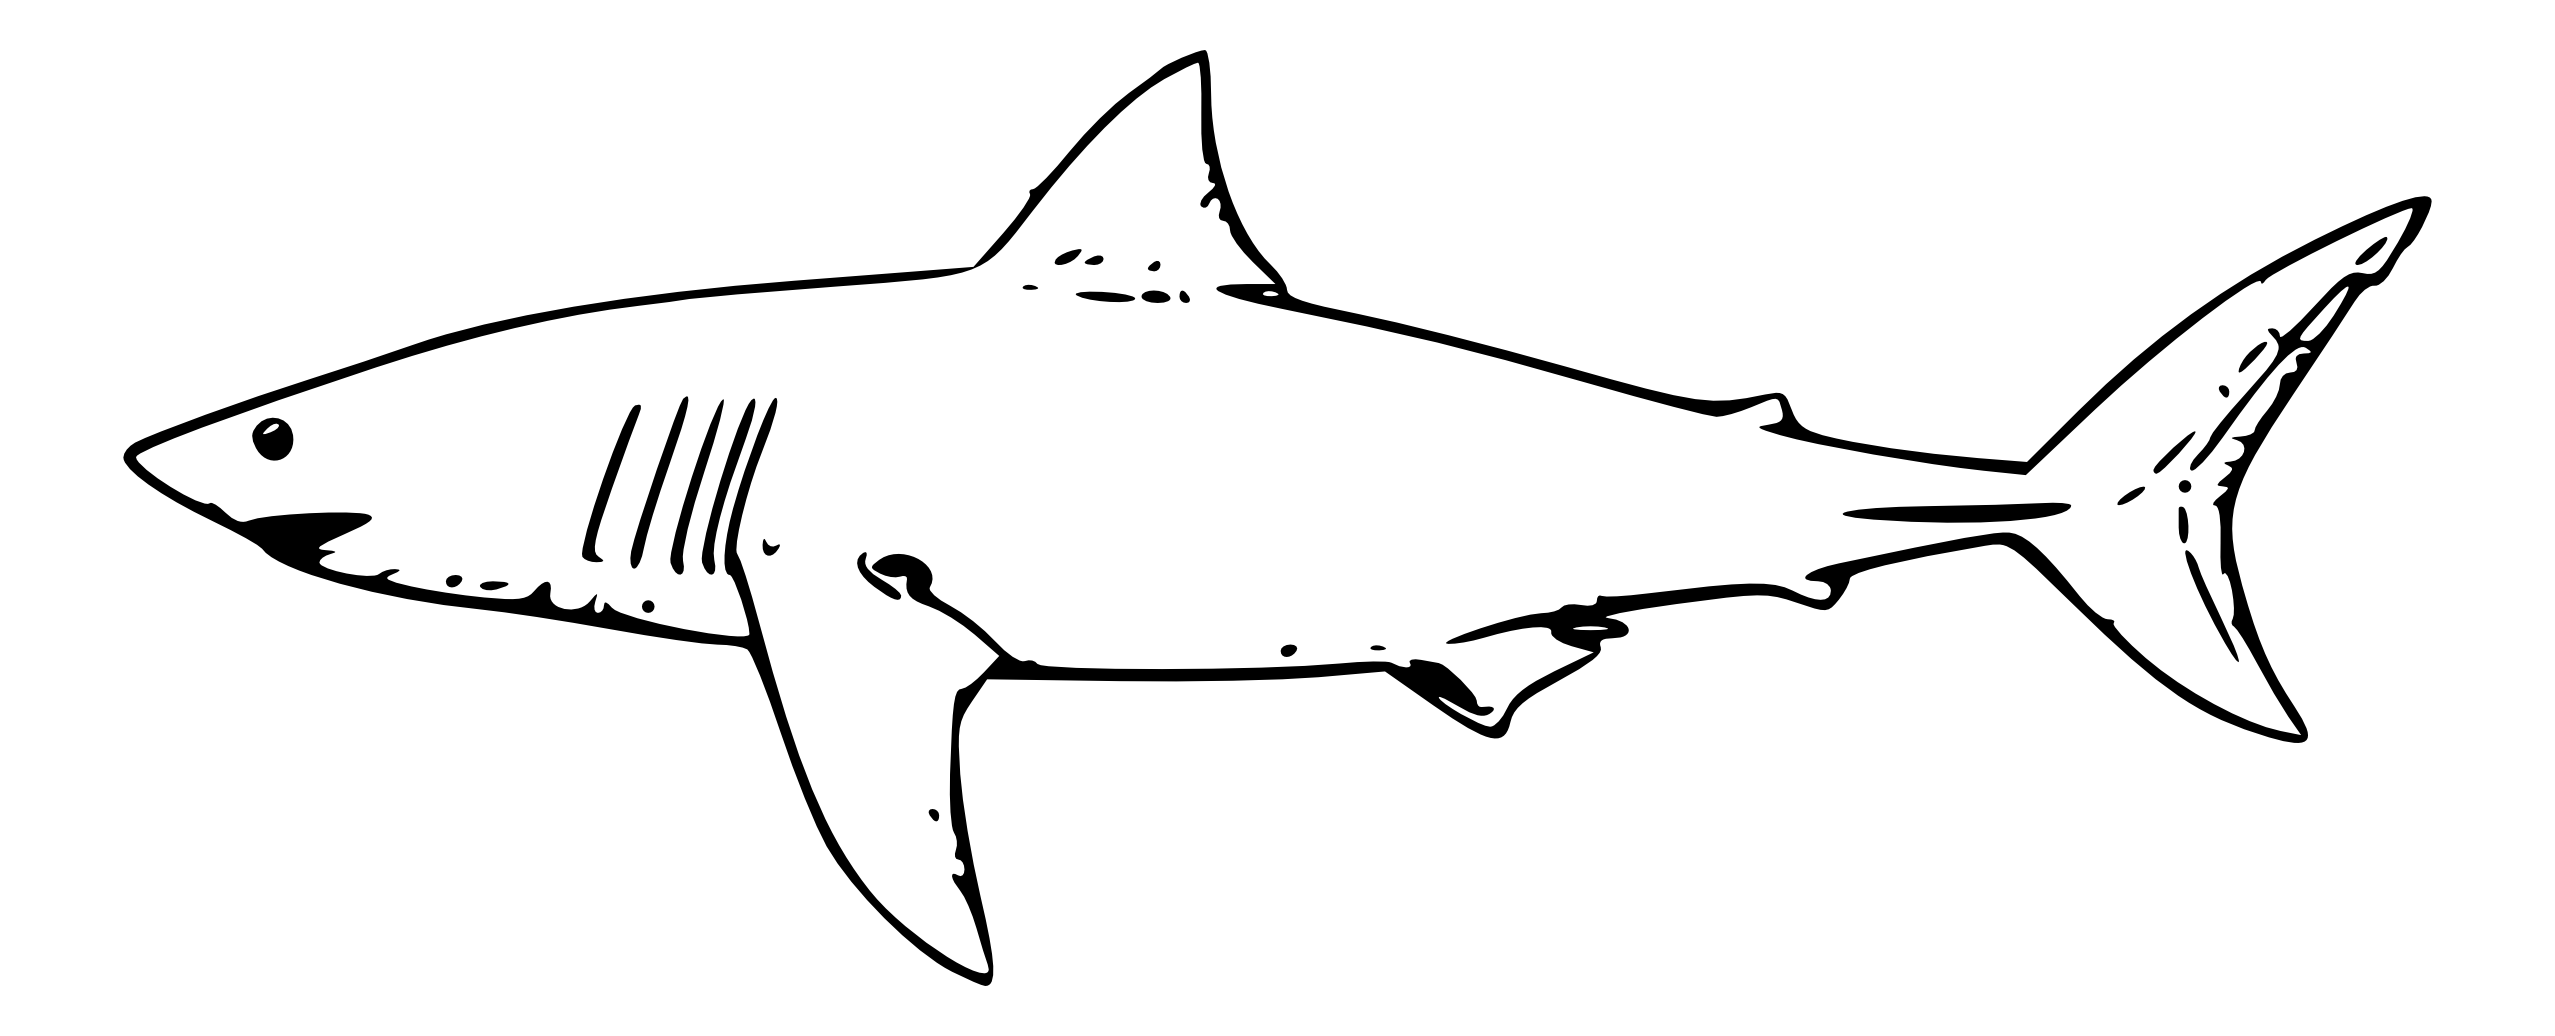 vector sharks nurse shark